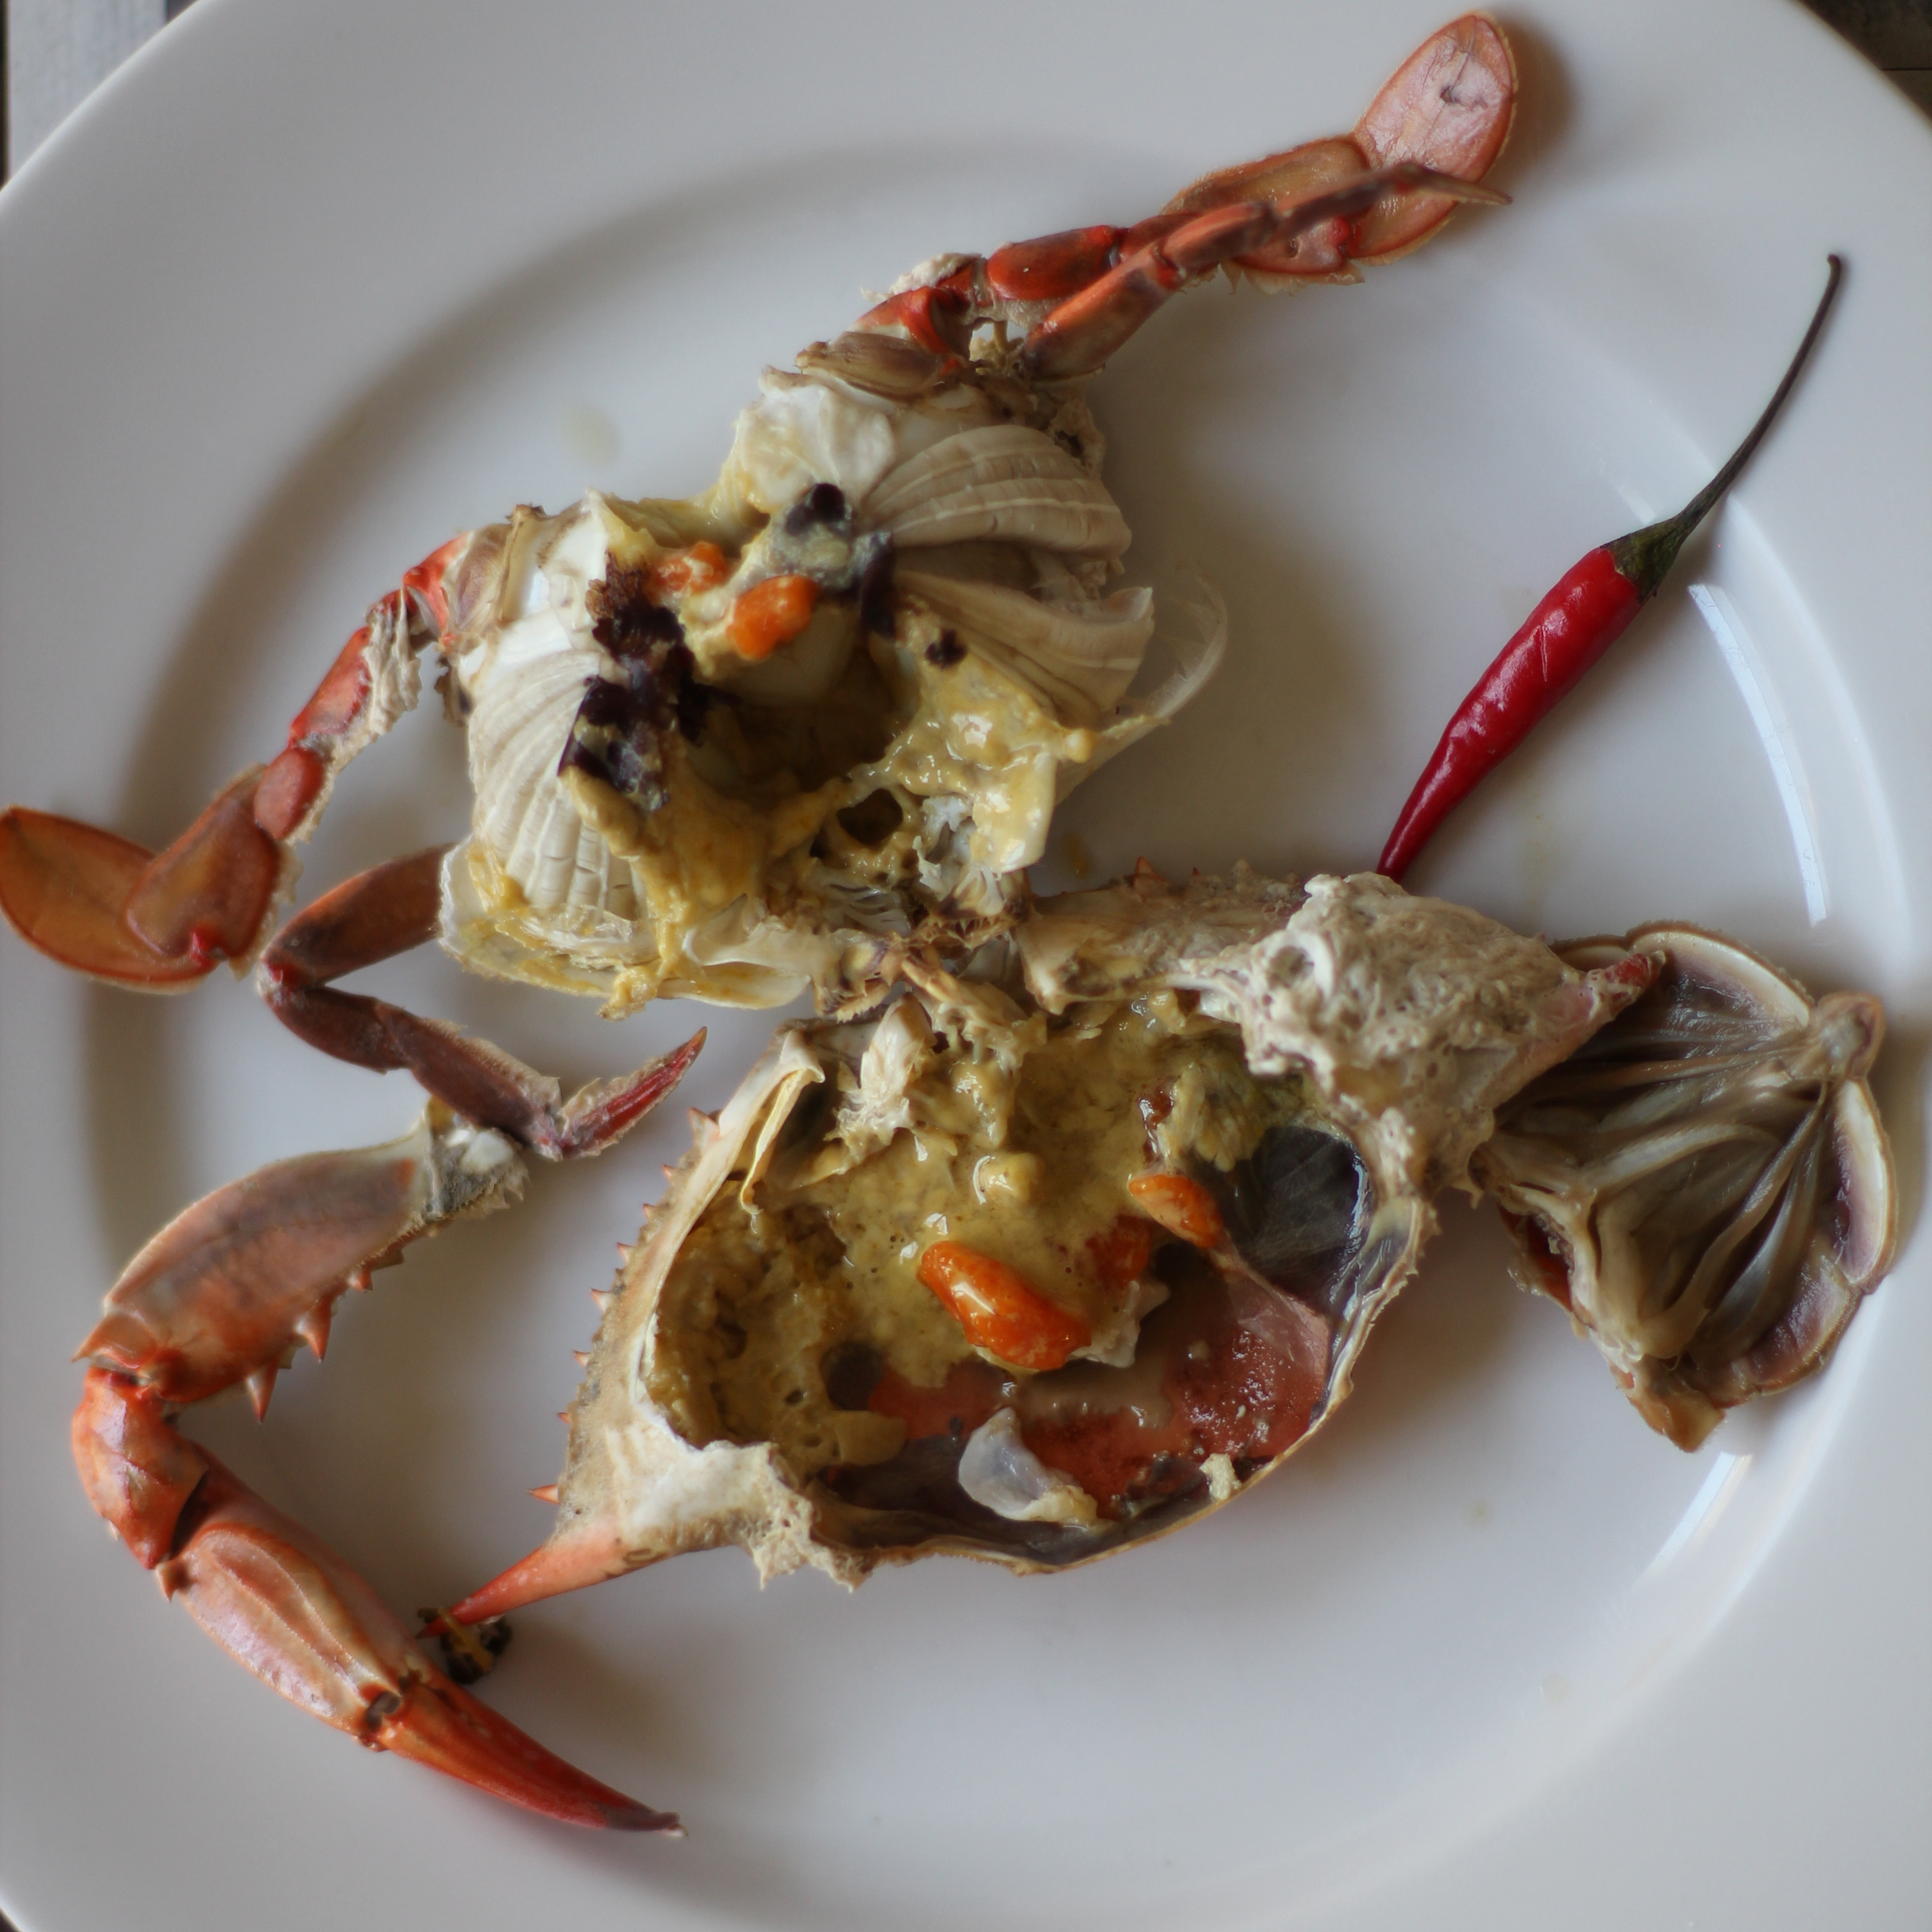 Old Bay And National Bohemian Beer Star In This Clic Recipe For Steamed Maryland Blue Crabs